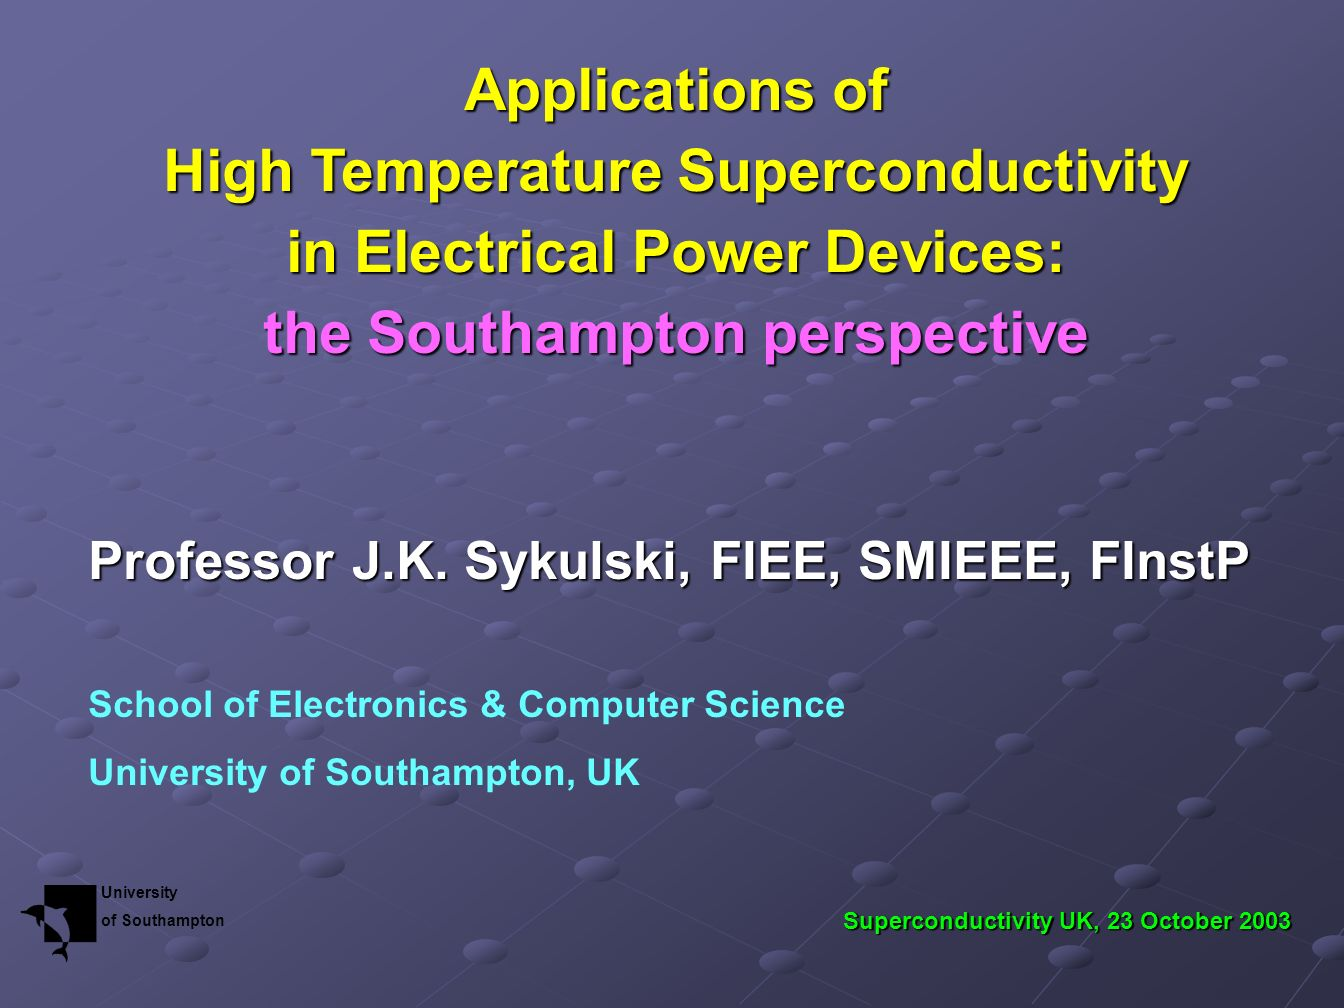 Applications of High Temperature Superconductivity in Electrical Power Devices: the Southampton perspective Professor J.K. Sykulski, FIEE, SMIEEE, FIn